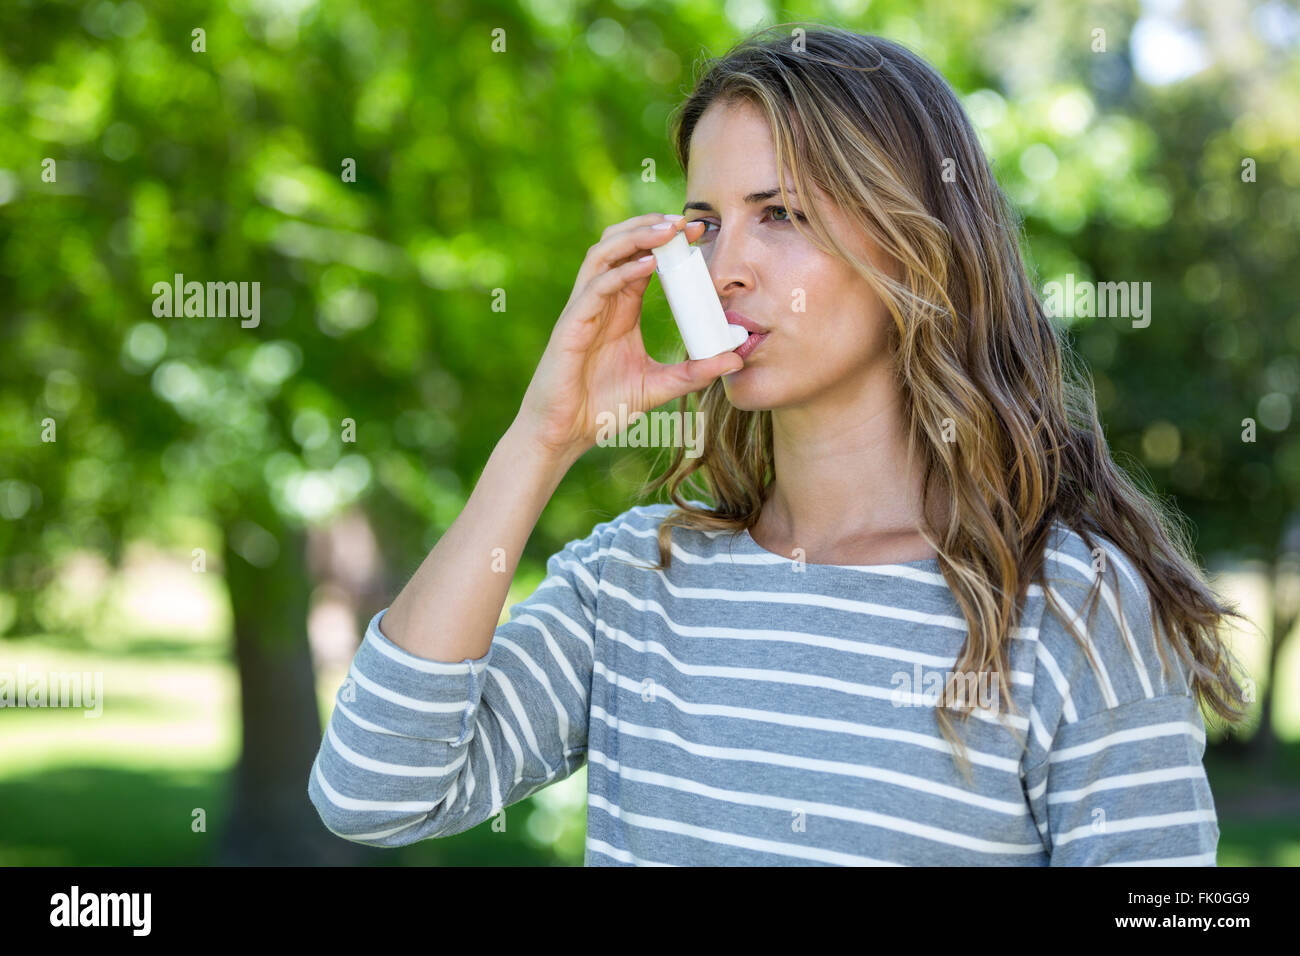 Woman using asthma inhaler - Stock Image